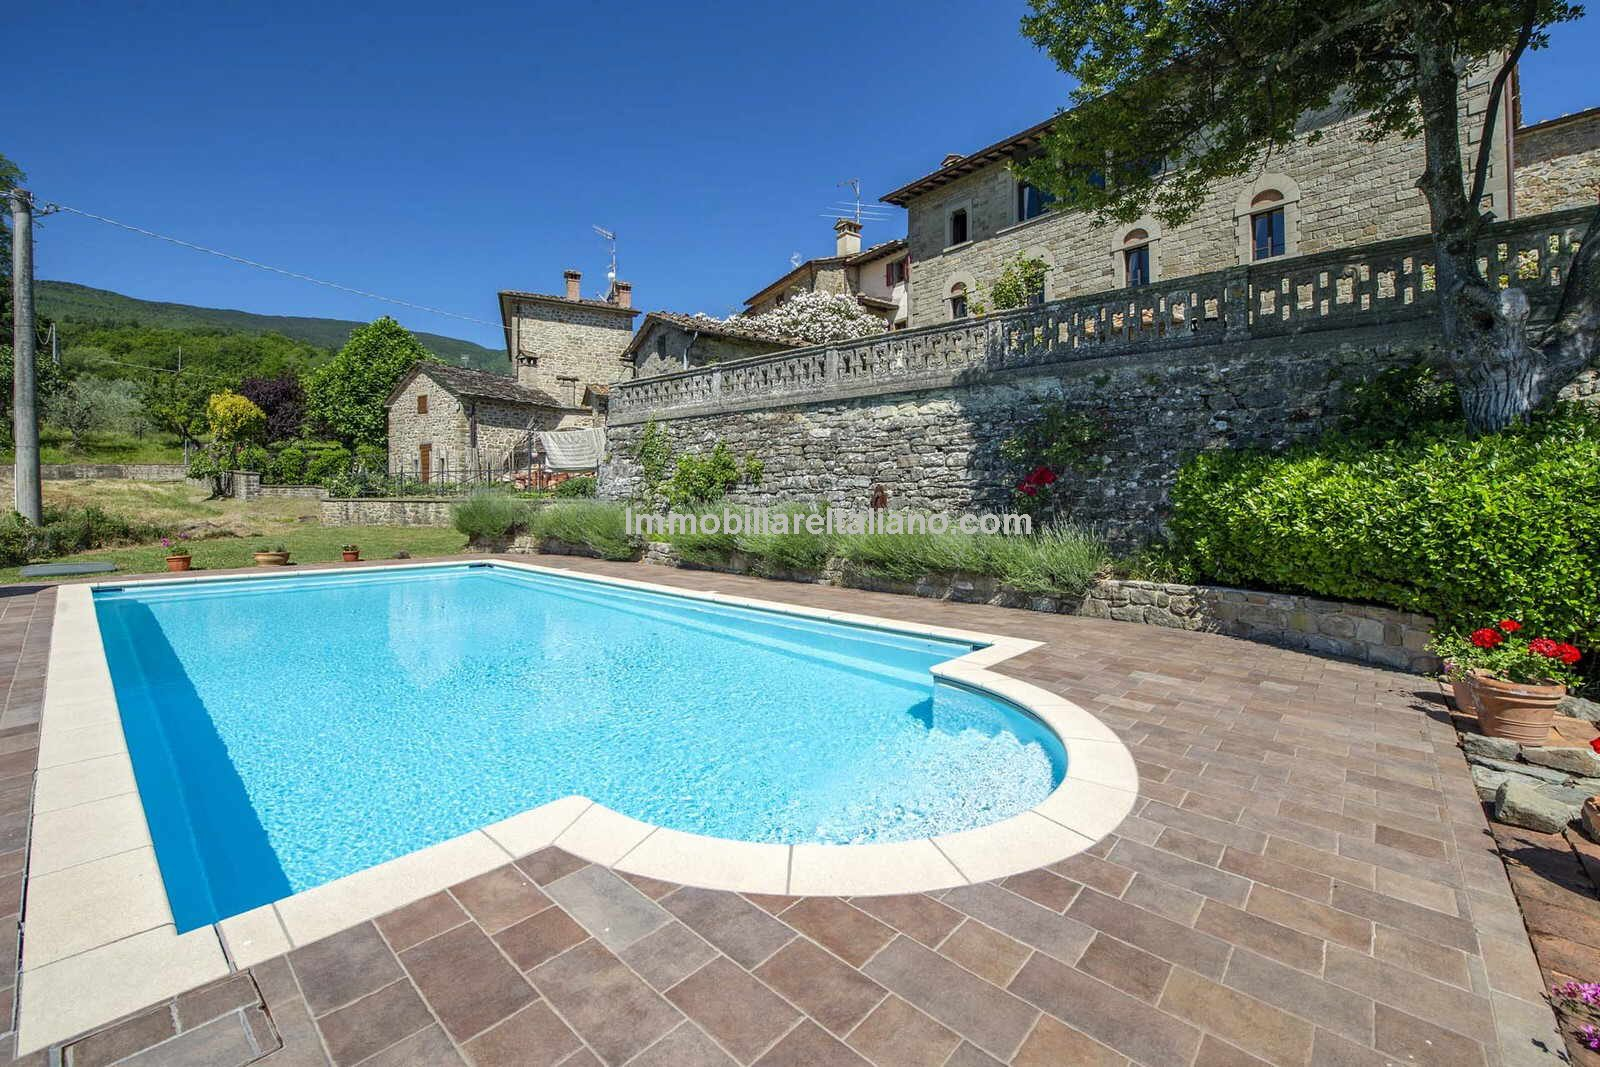 External view of Italian mansion in Tuscany